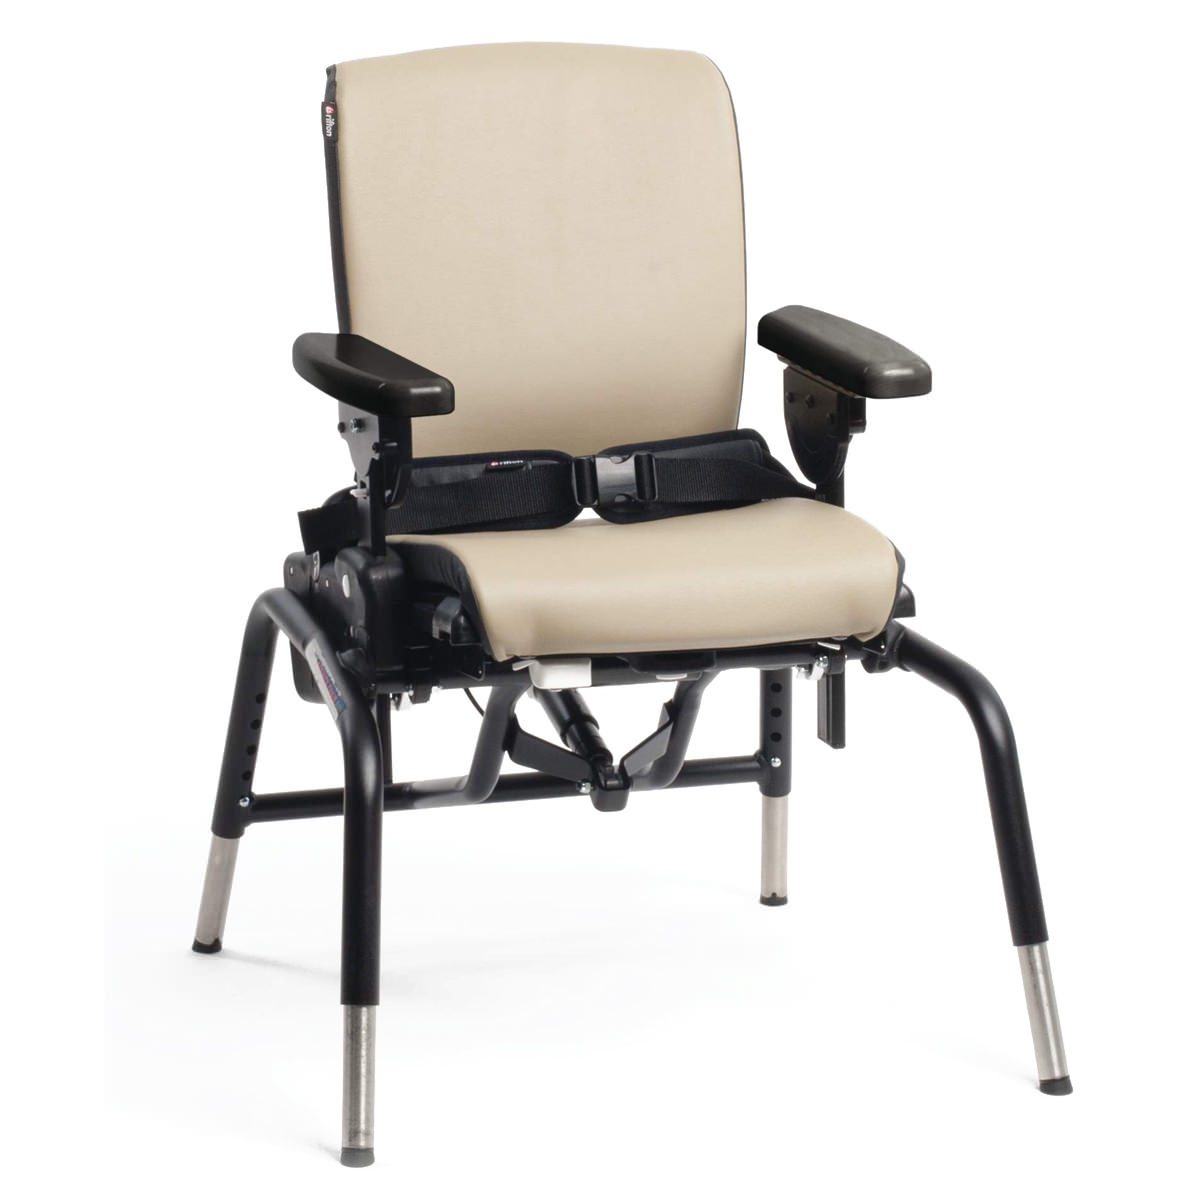 Rifton activity chair with standard base - Medium